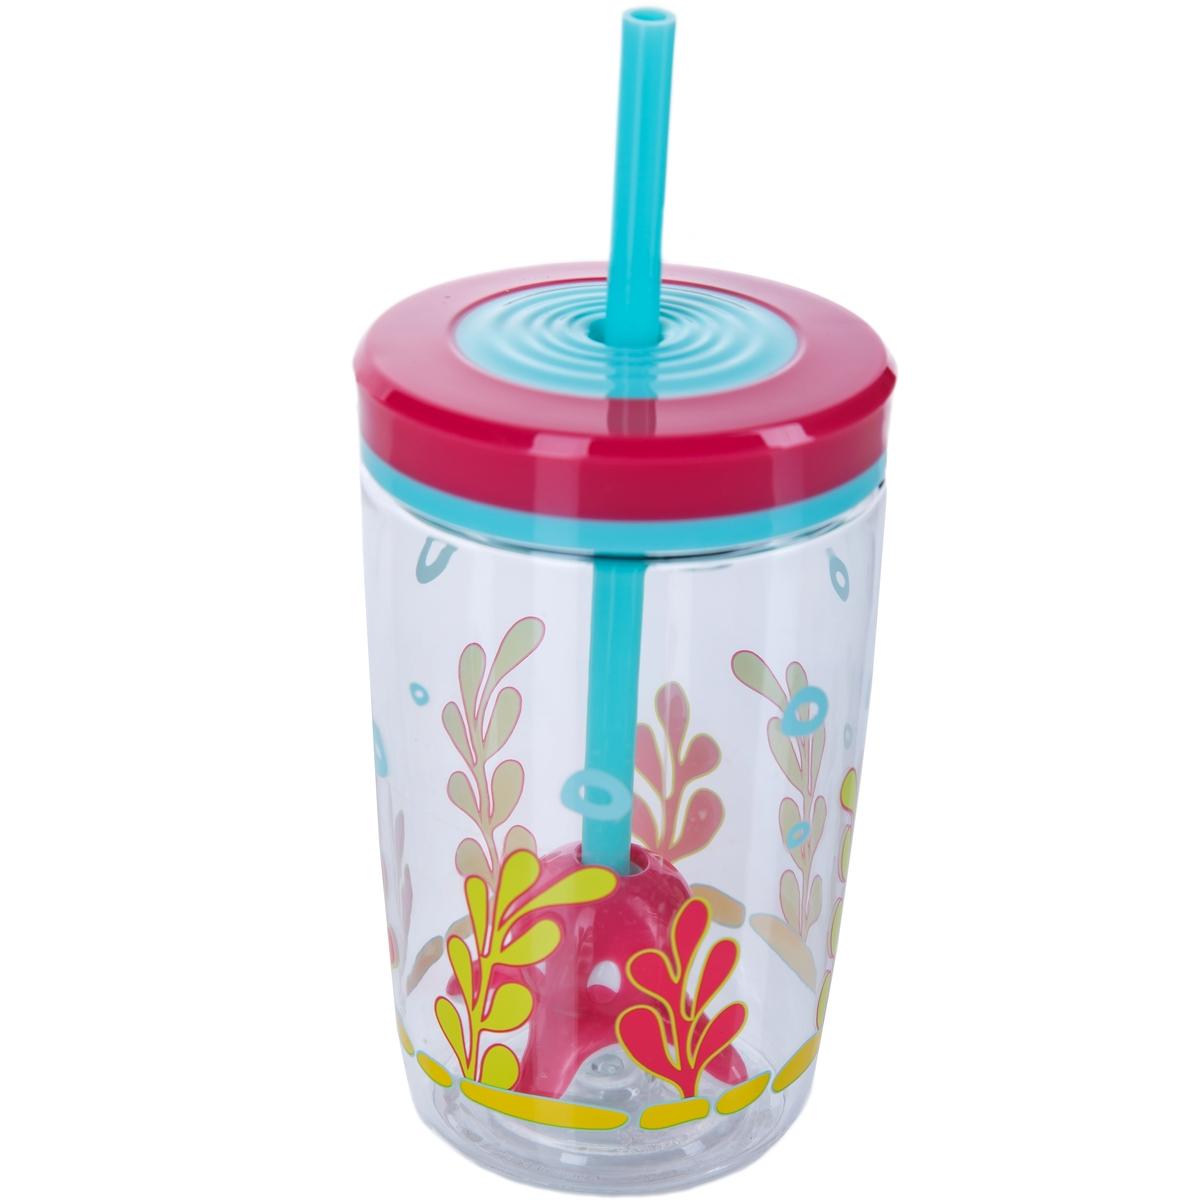 Детский стакан с соломинкой Floating straw tumbler Squid, 0.47 л (Contigo contigo0773)